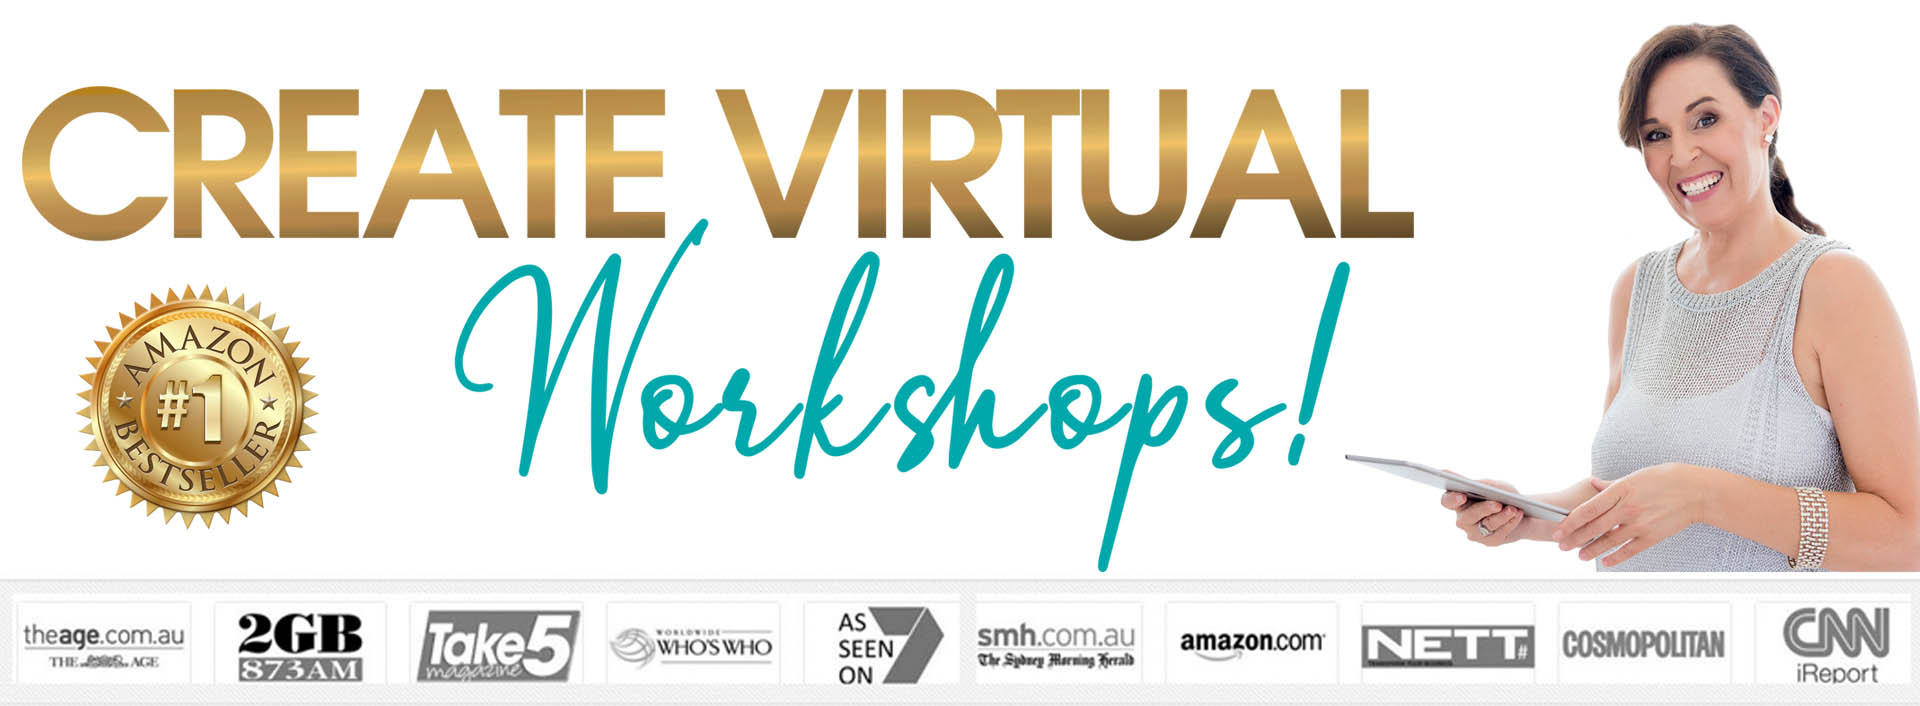 Create Virtual Workshops